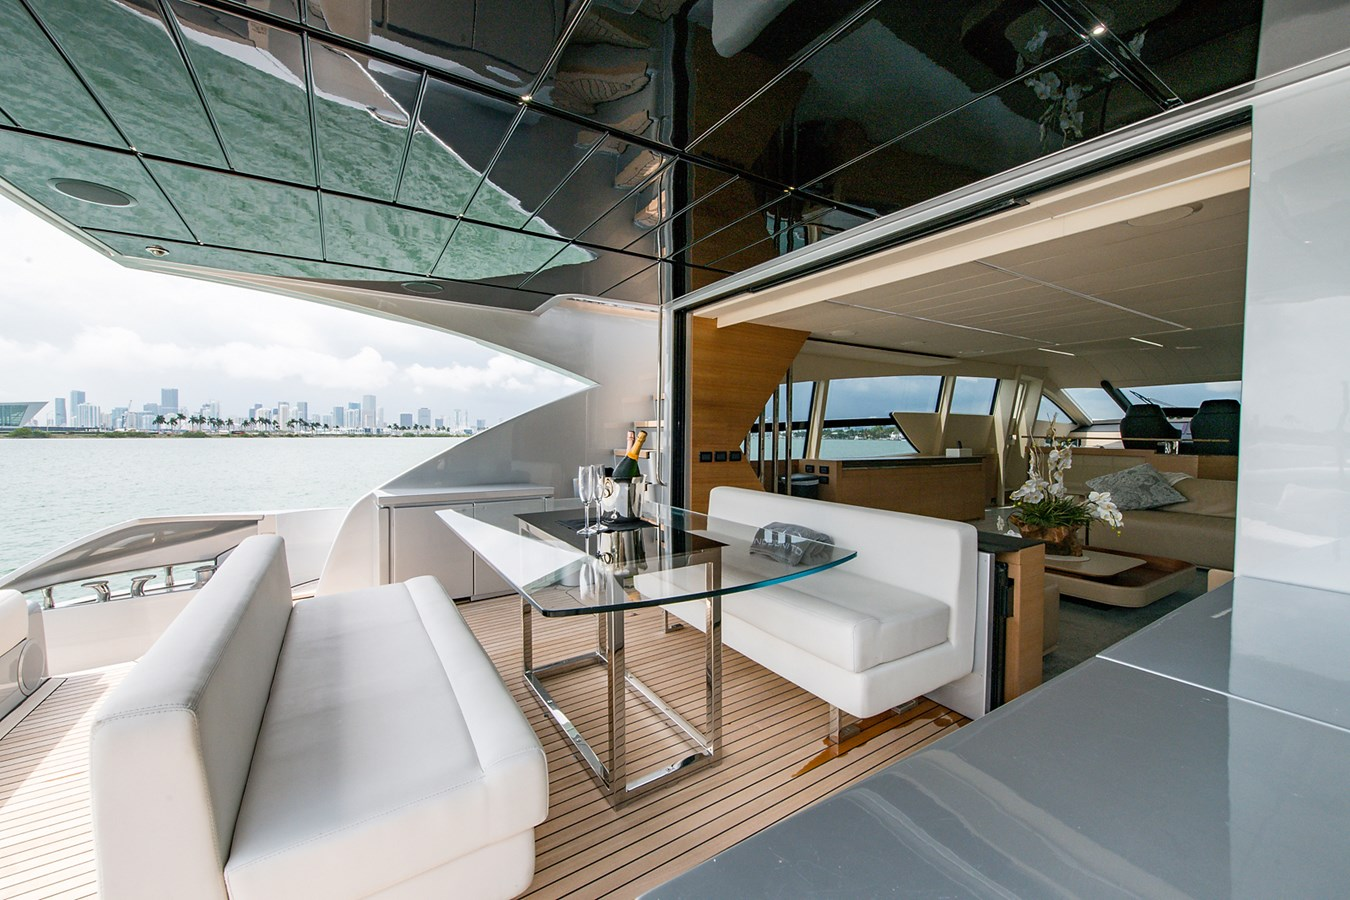 Incognito_Aft deck15 2012 PERSHING  Motor Yacht 2810234